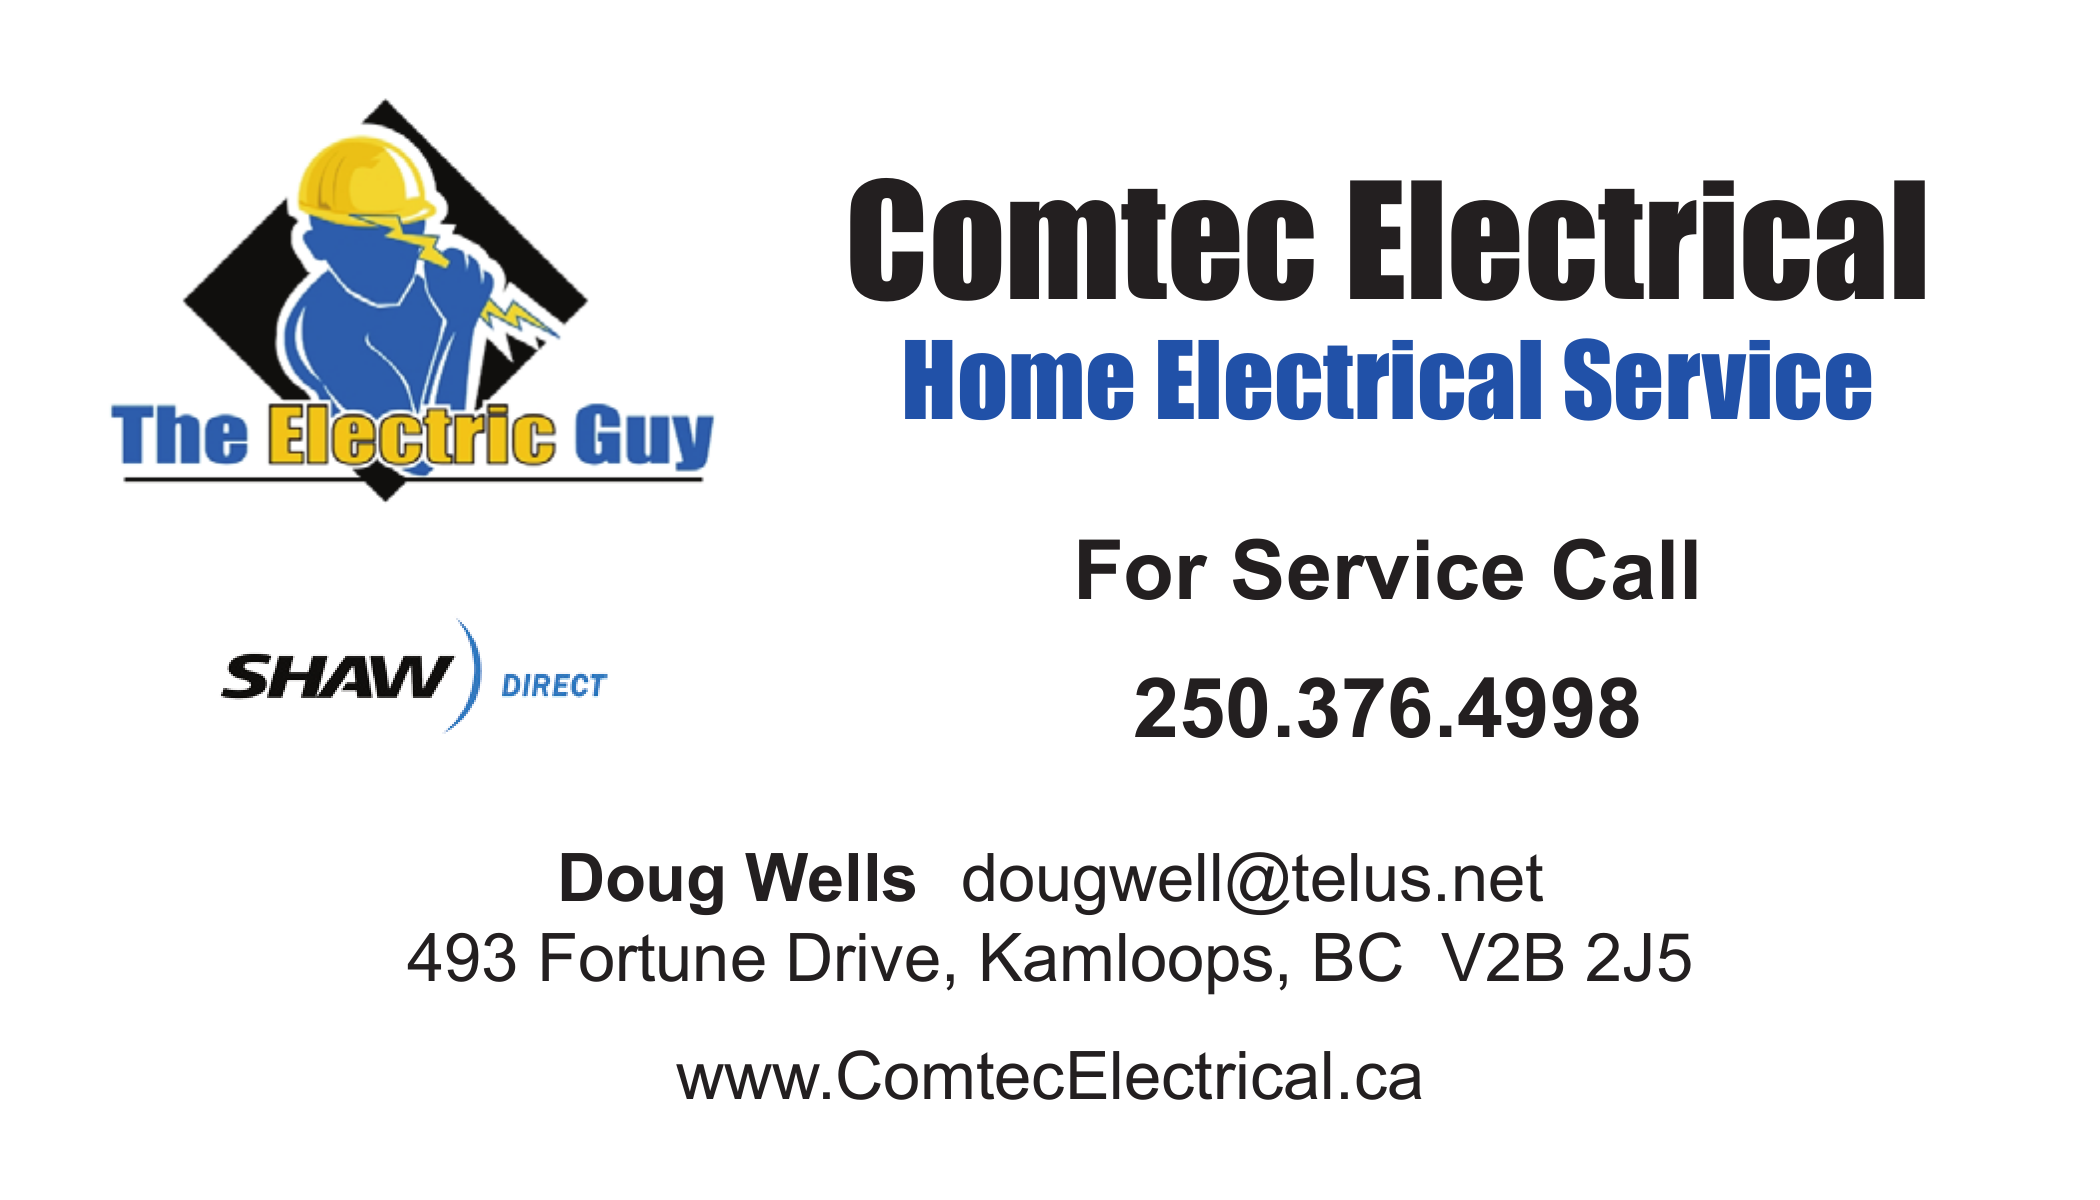 Comtec Electrical Theelectricguy On Pinterest Aluminum Wiring In Homes Bc